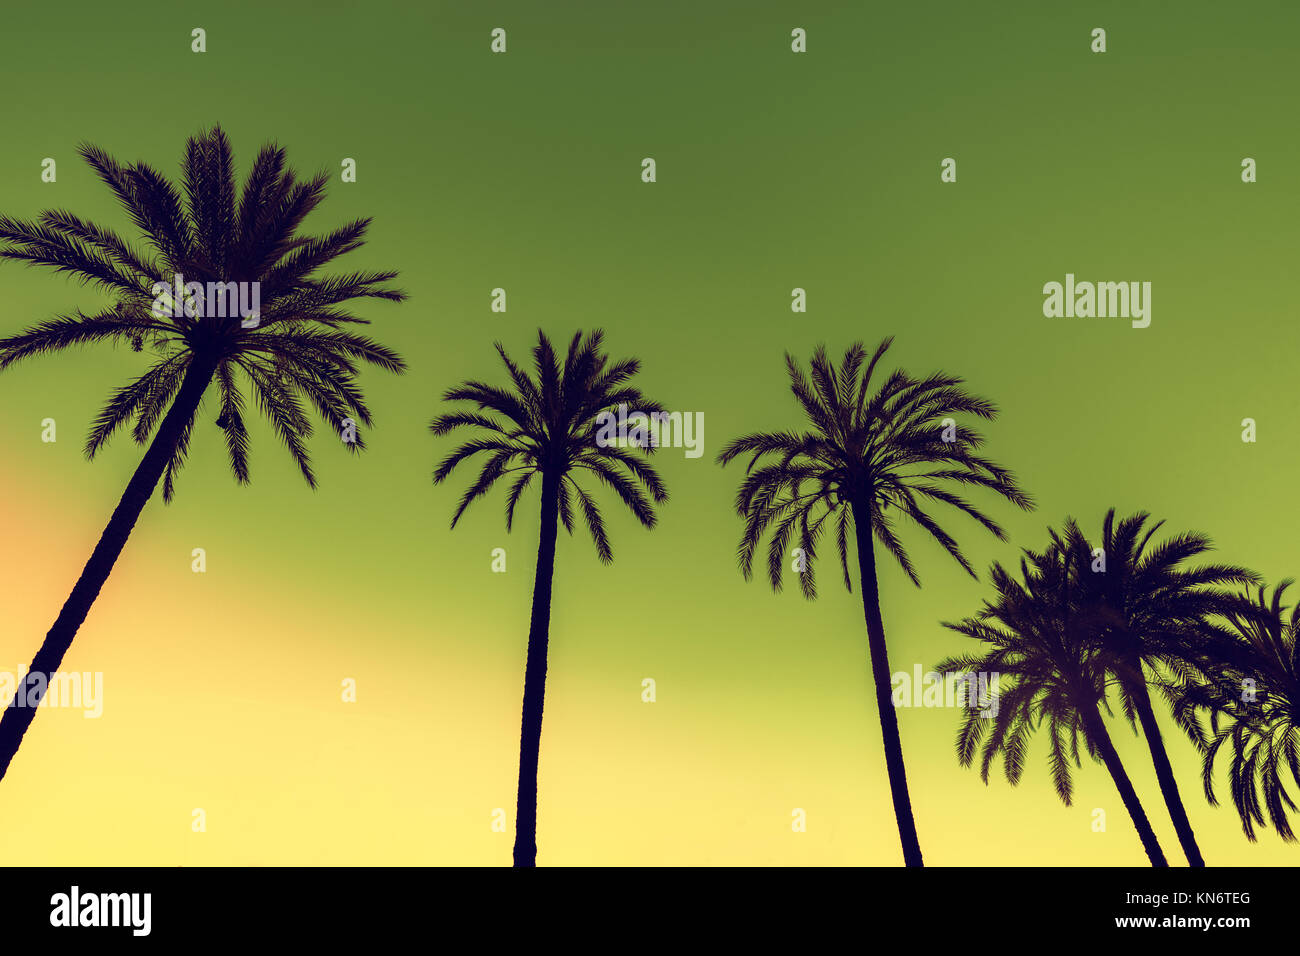 Palm Trees Against Pink Sky Stock Photos & Palm Trees Against Pink ...